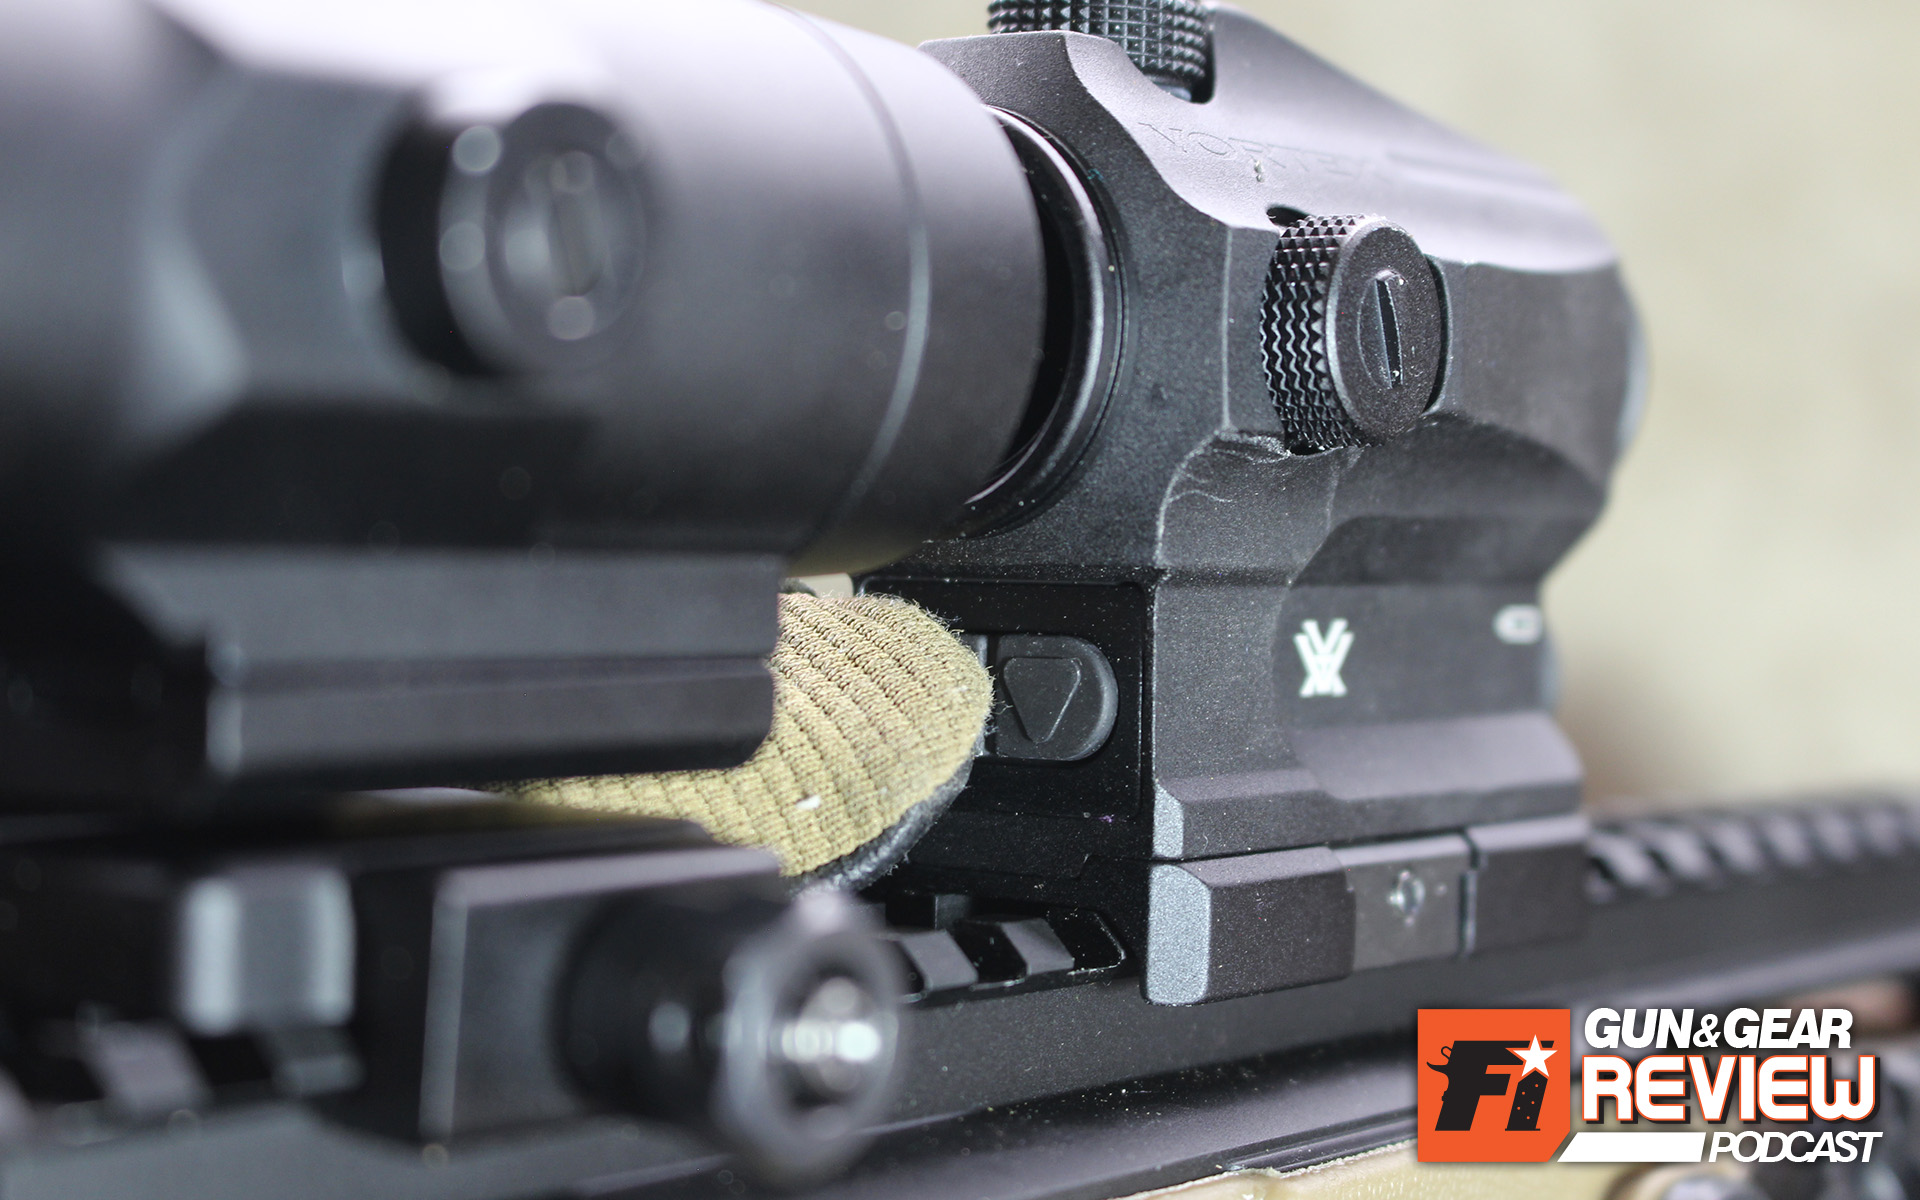 Ideally you should mount the magnifier as close to the red dot as possible, as long as is still freely actuates. For red dots with rear located controls like the SparcAR, this could be alittle tight for pressing the buttons with the magnifier in use. Still, I little to no issue even with gloved fingers.